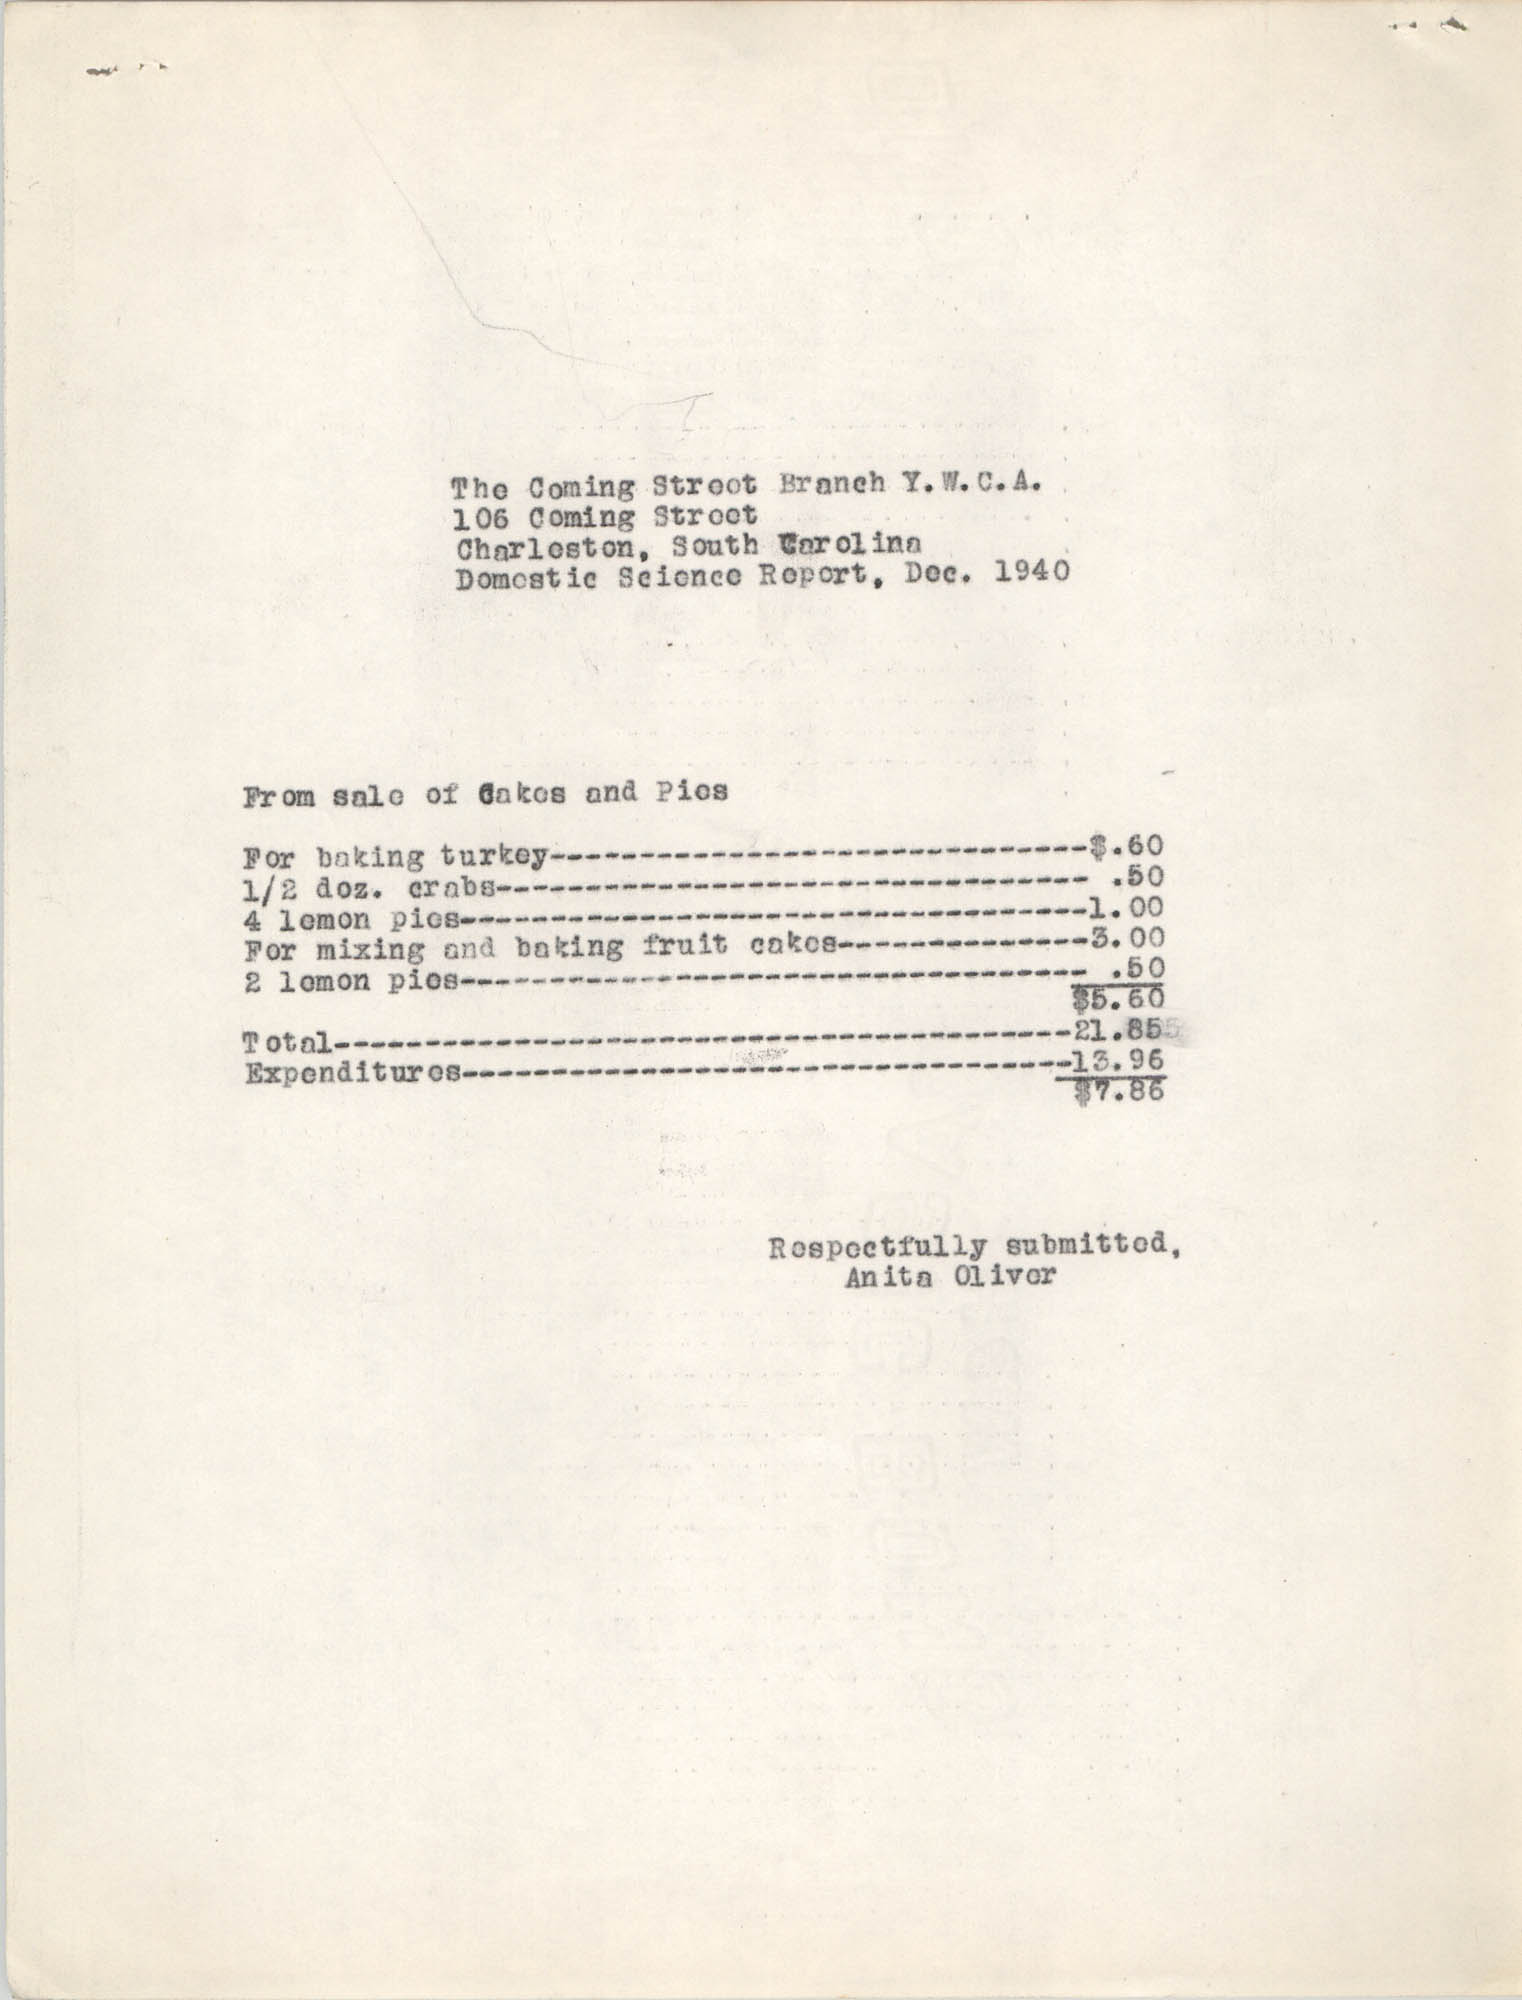 Monthly Report for the Coming Street Y.W.C.A., Domestic Science School, September 1940, Page 5